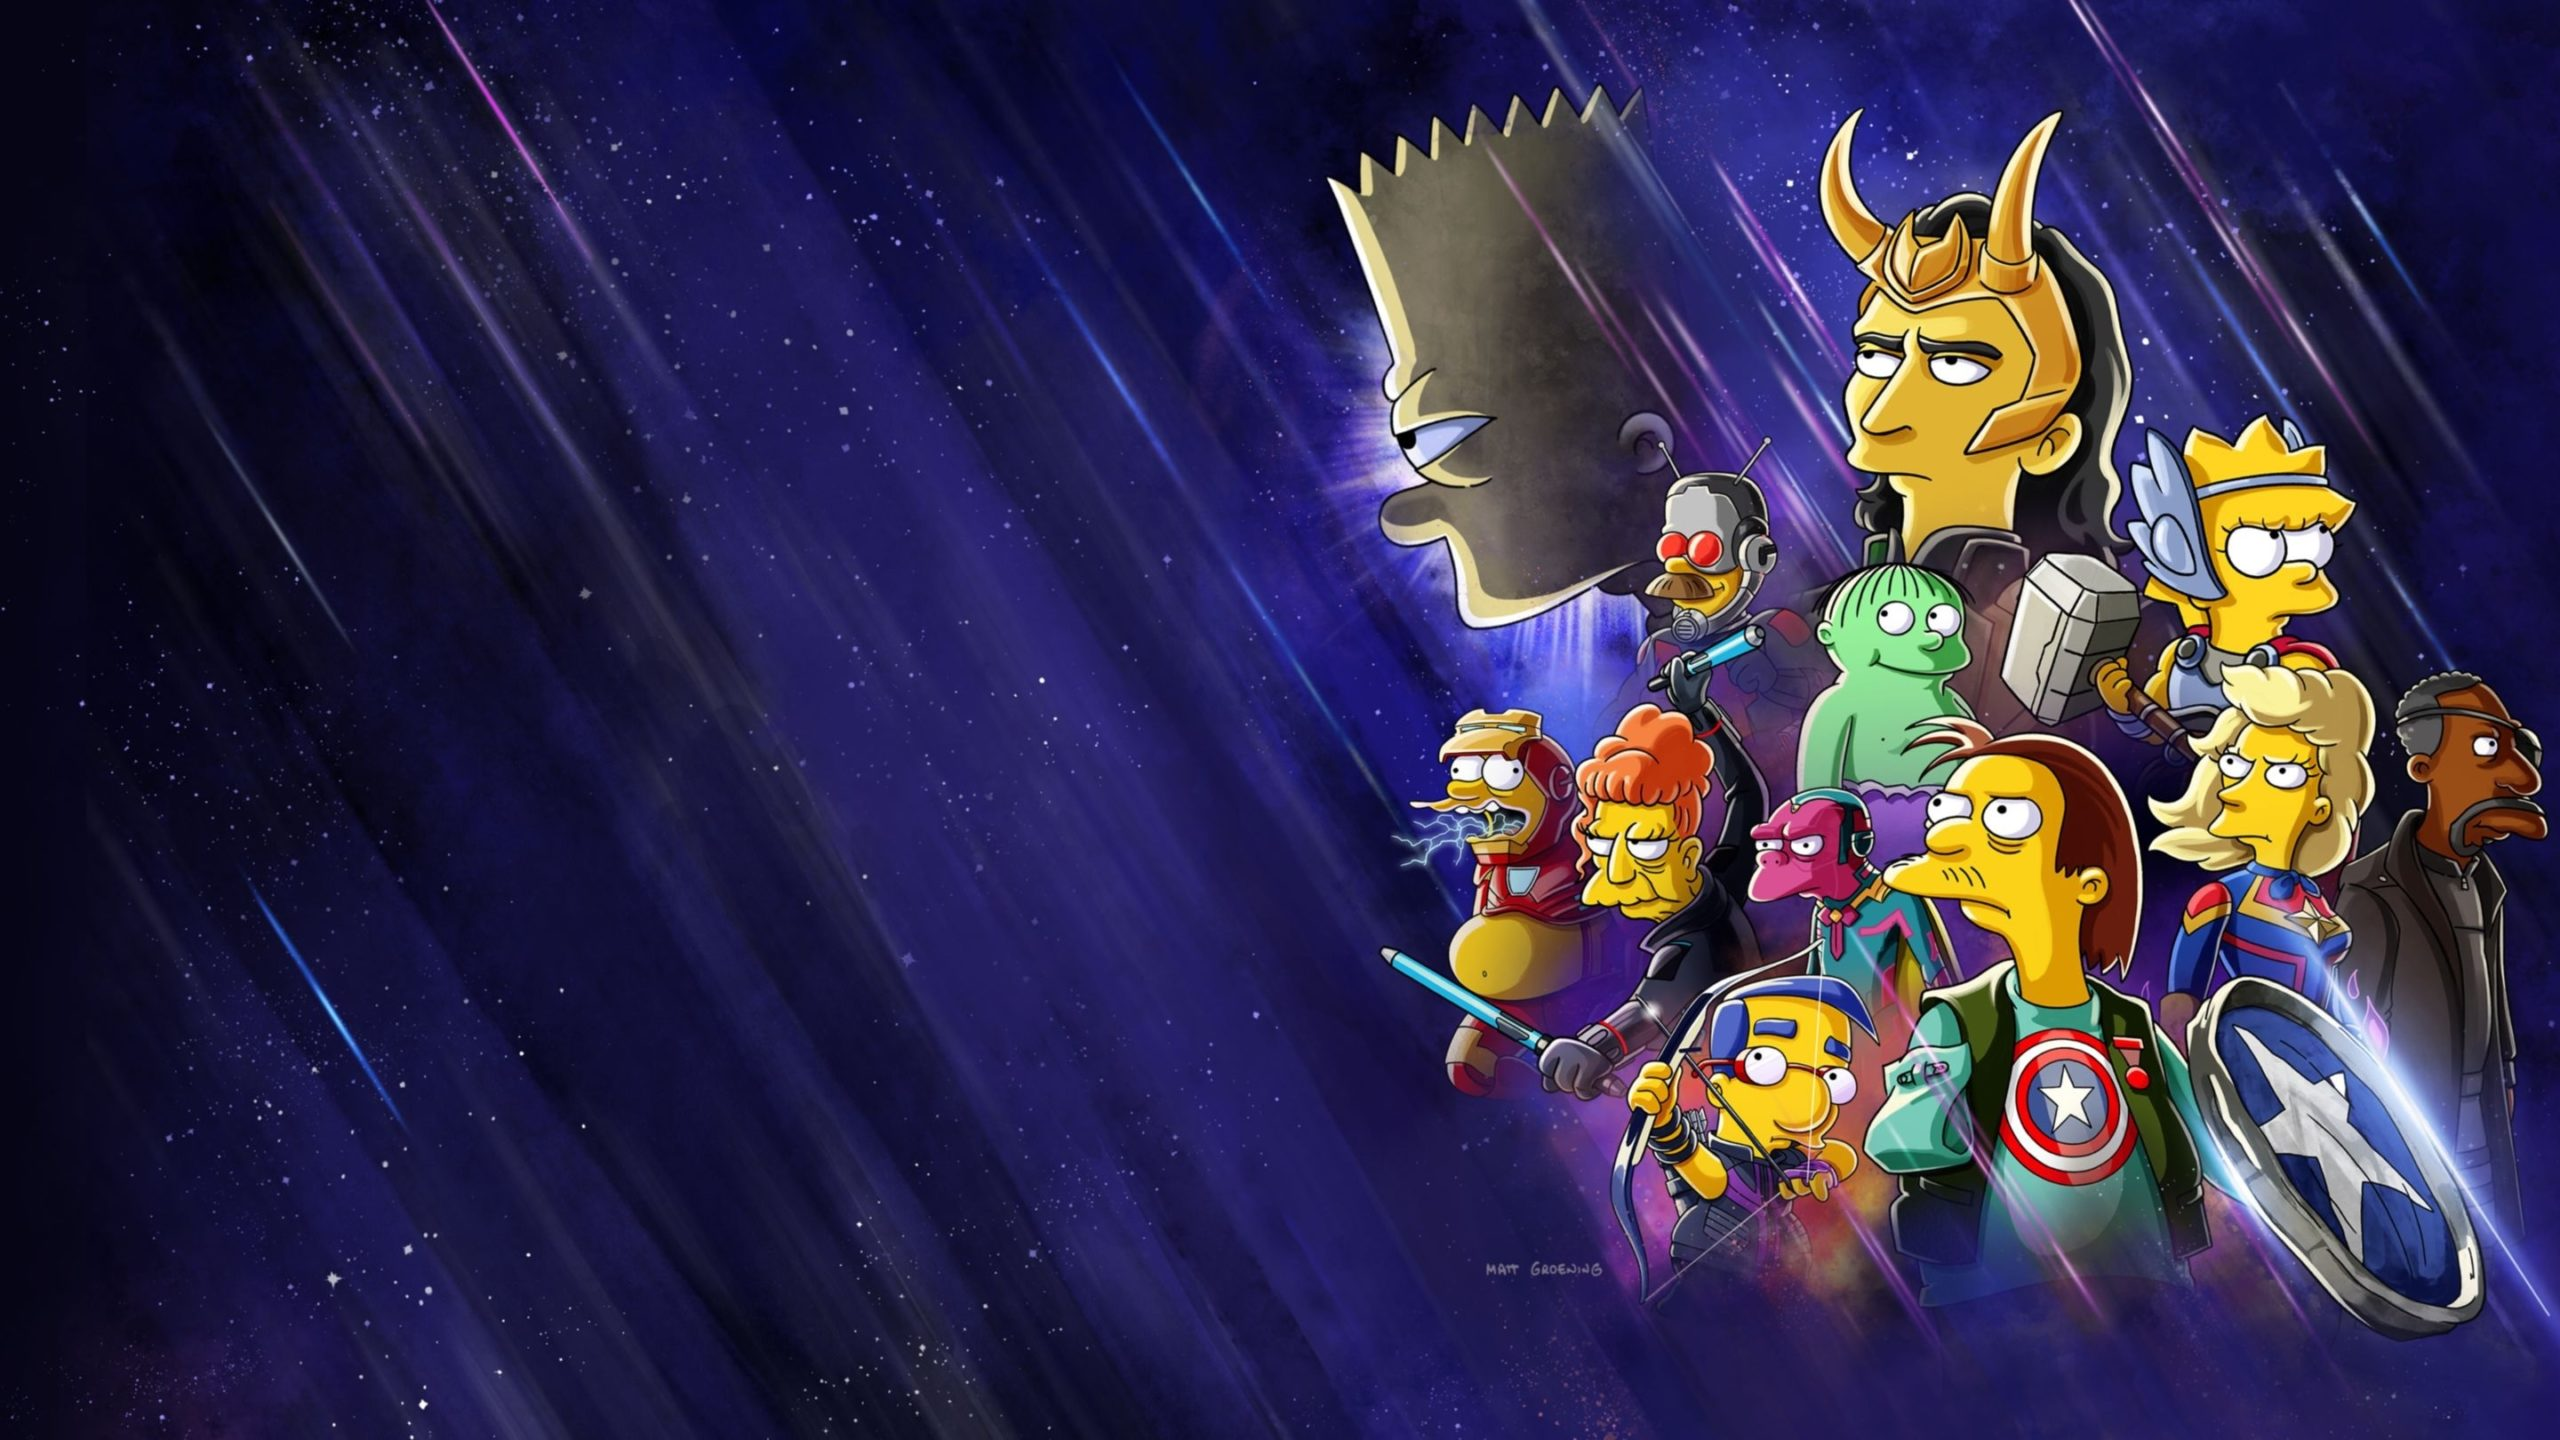 The Good, The Bart, and The Loki: Release Date | The Ultimate Crossover We Deserve